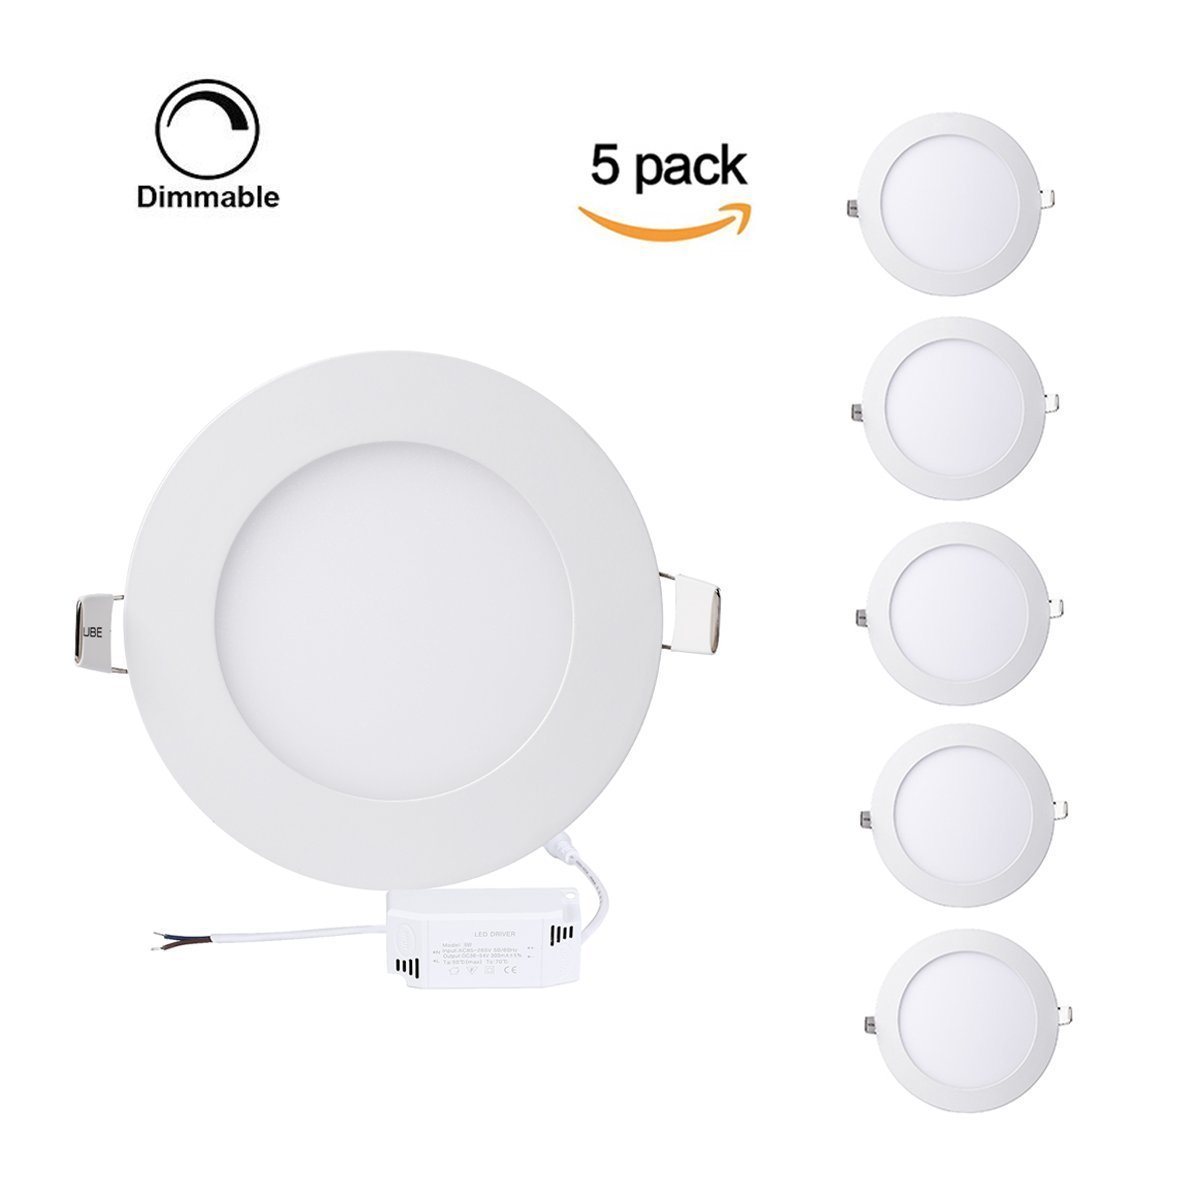 Pack of 5 Units Dimmable Round LED Panel Light,Ultra-thin Recessed Ceiling Light,Round led Flat panel light Downlight with 120V Isolation Driver for Home, Office, Commercial Lighting (9W, 5000K)